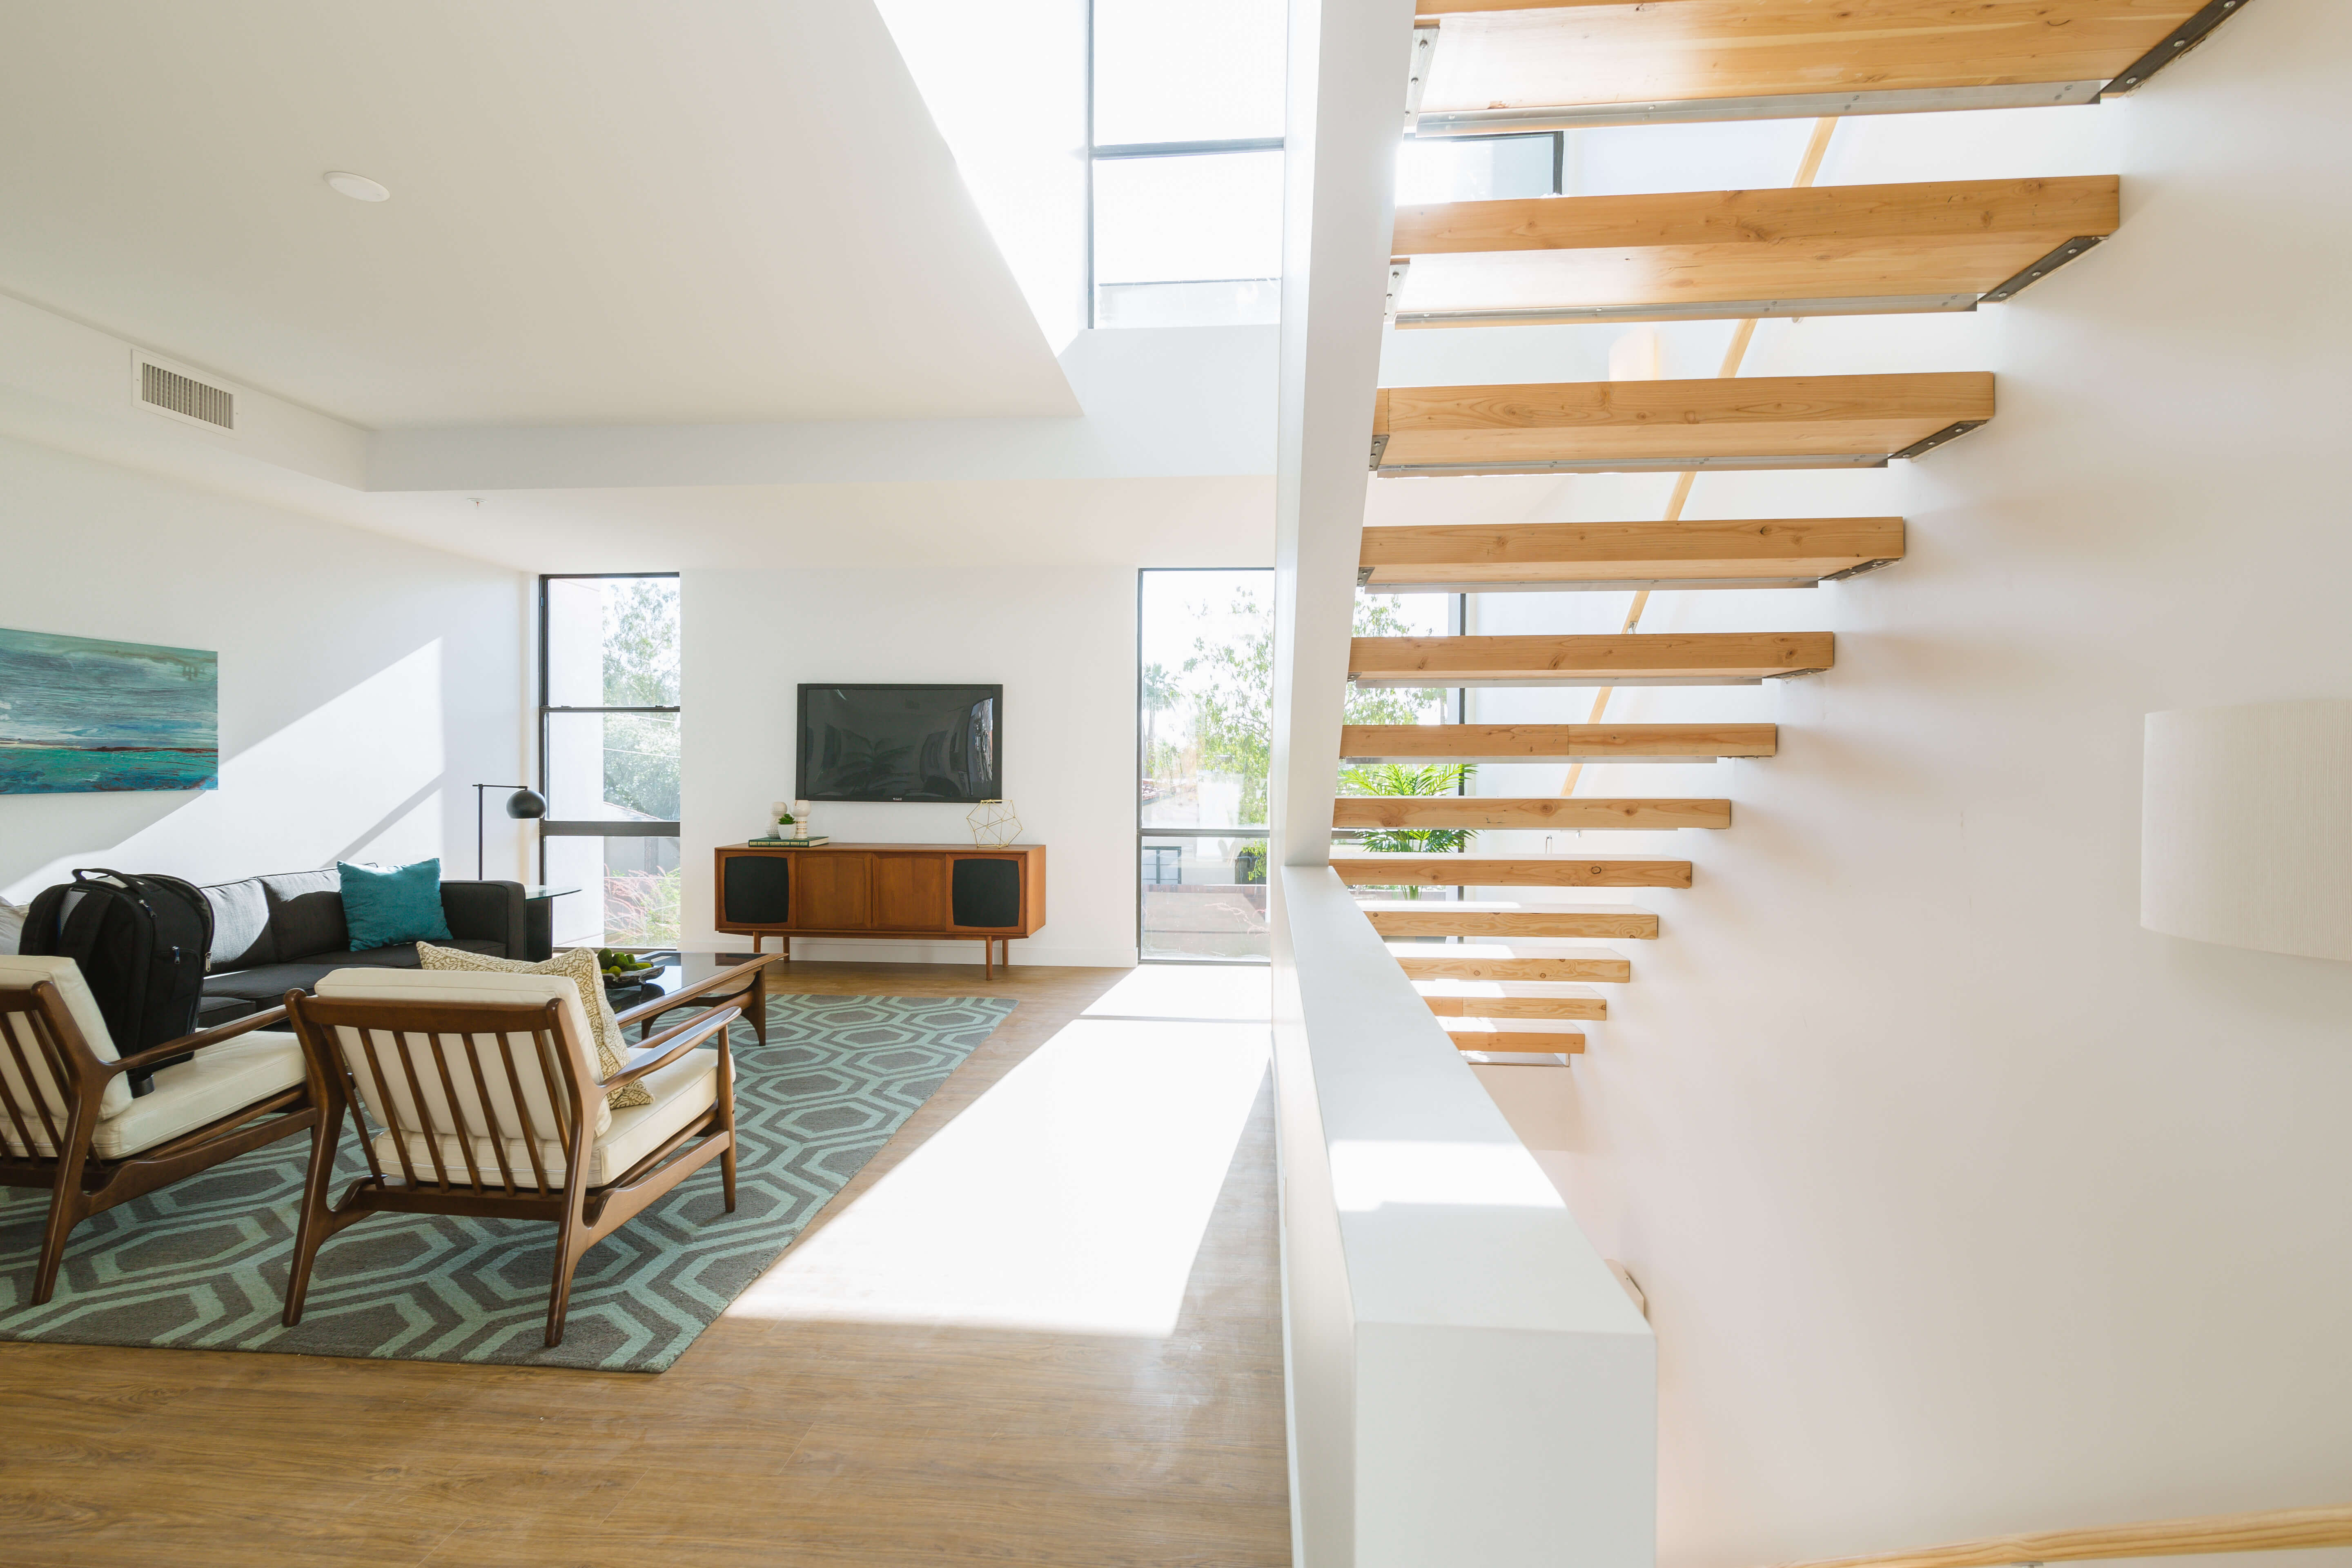 The Three Level Townhomes Exudes Warmth, Openness And Light. Image Courtesy  ArtHAUS.